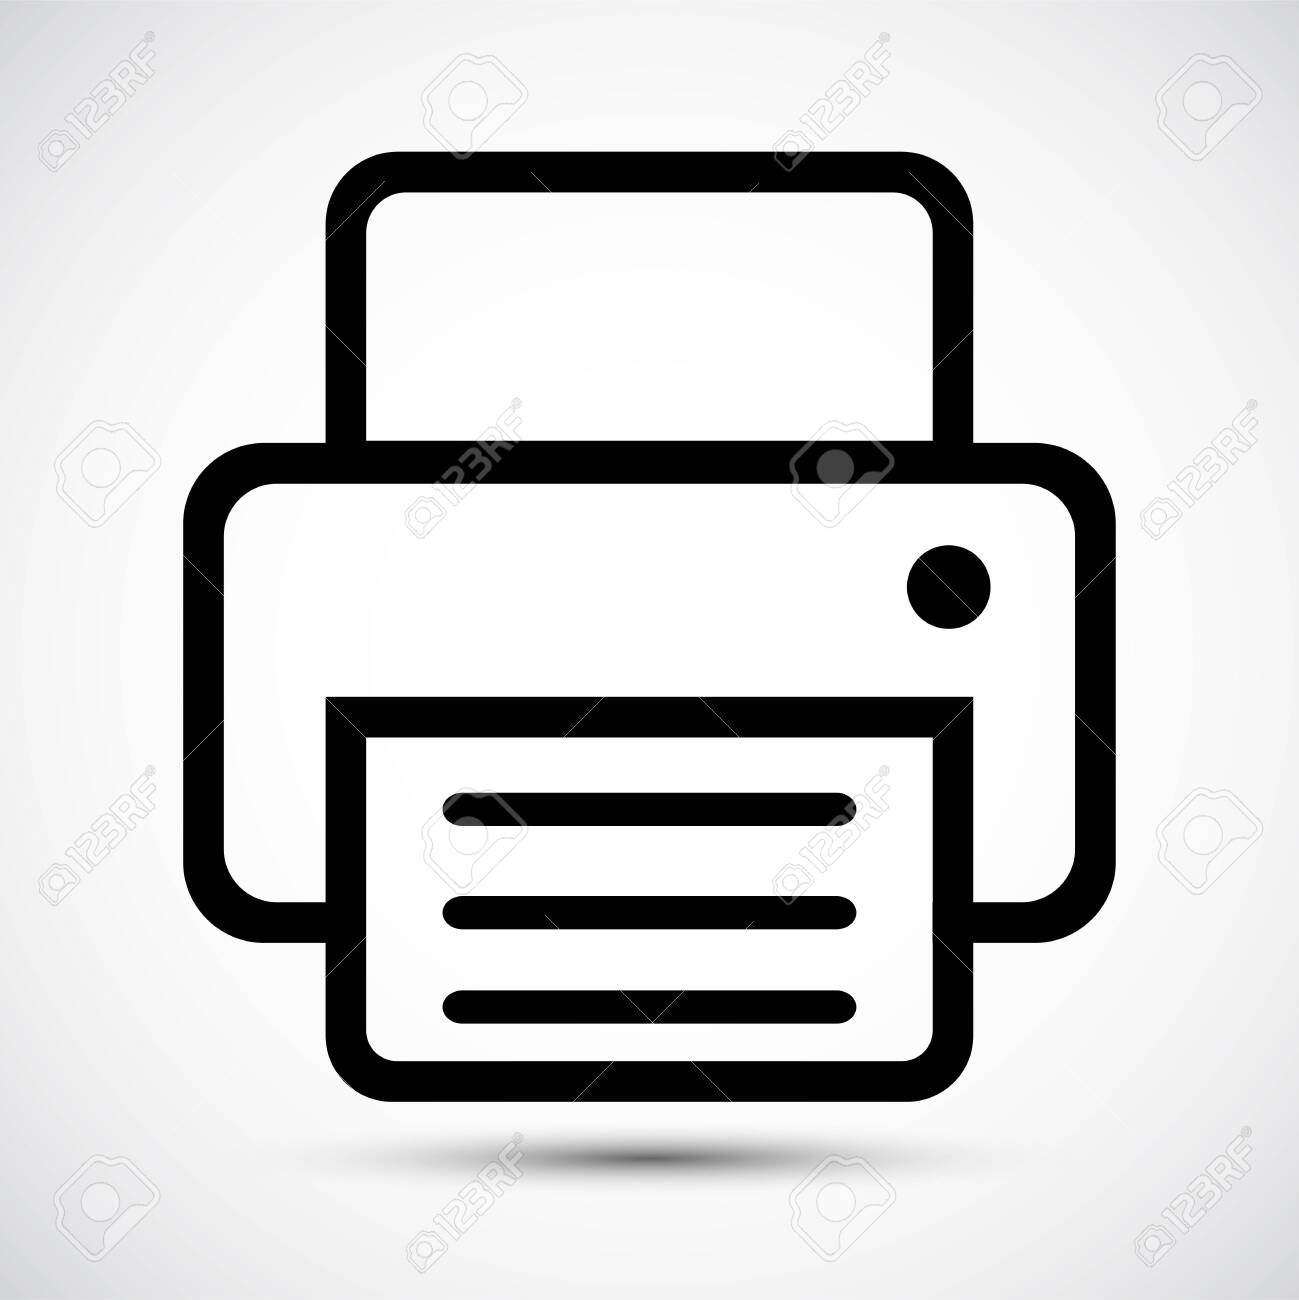 fax icon symbol sign isolate on white background vector illustration royalty free cliparts vectors and stock illustration image 129618858 fax icon symbol sign isolate on white background vector illustration